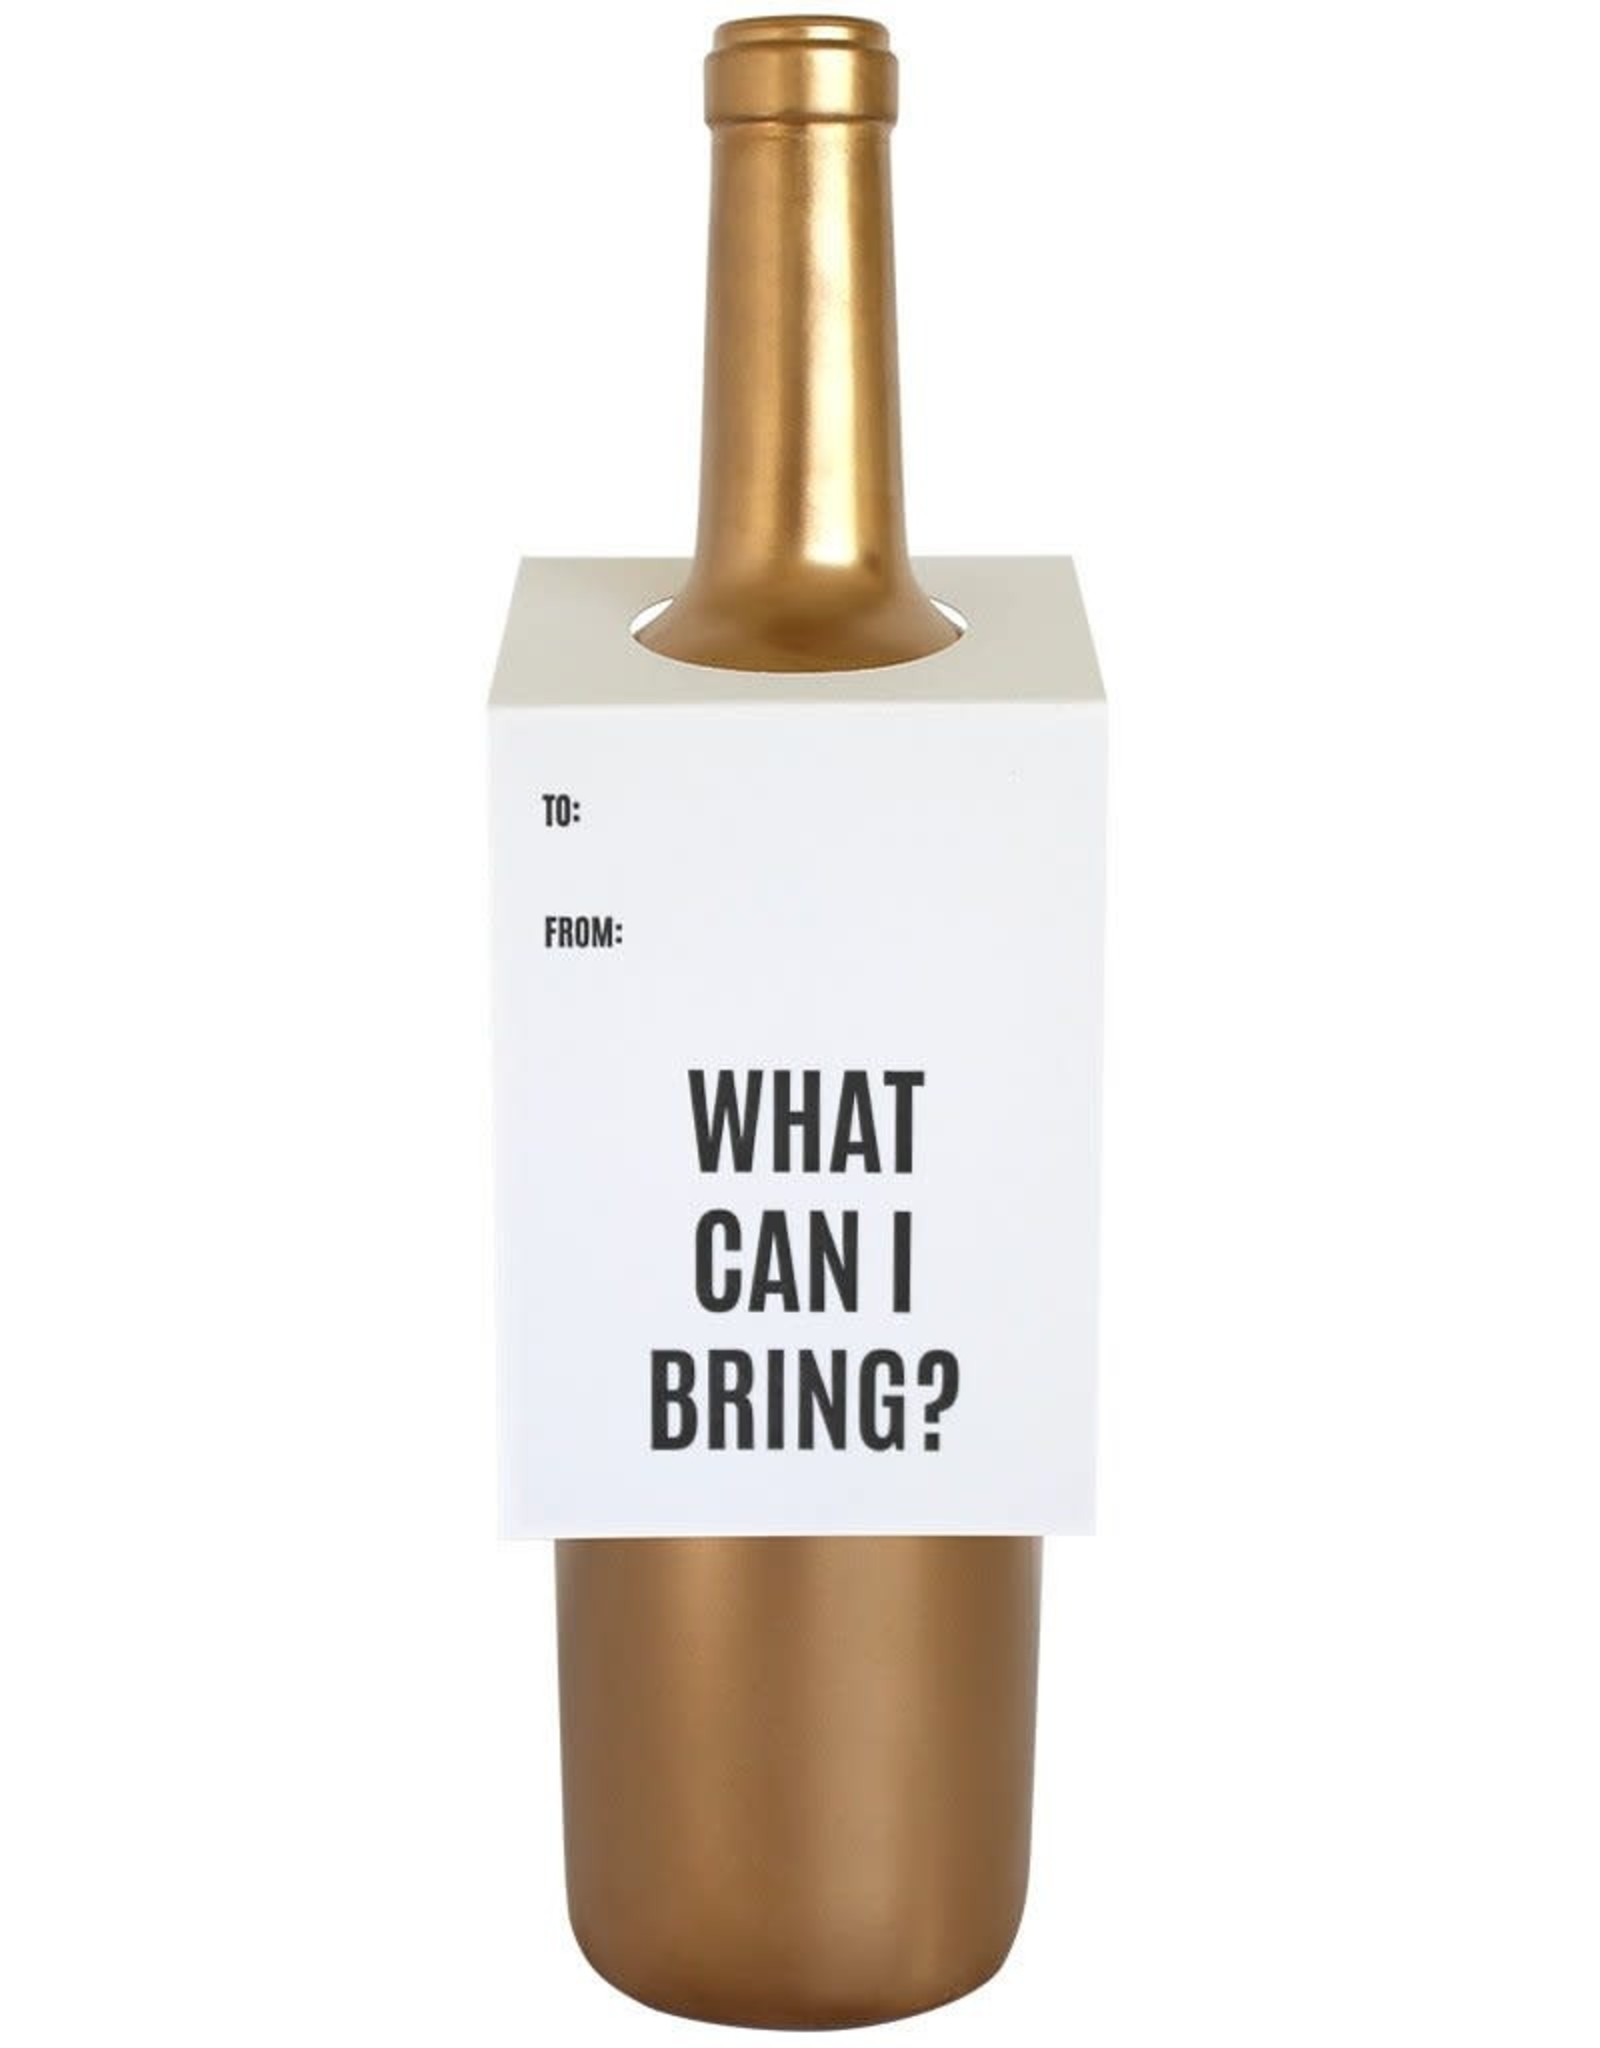 What Can I Bring? Wine Tag - Single